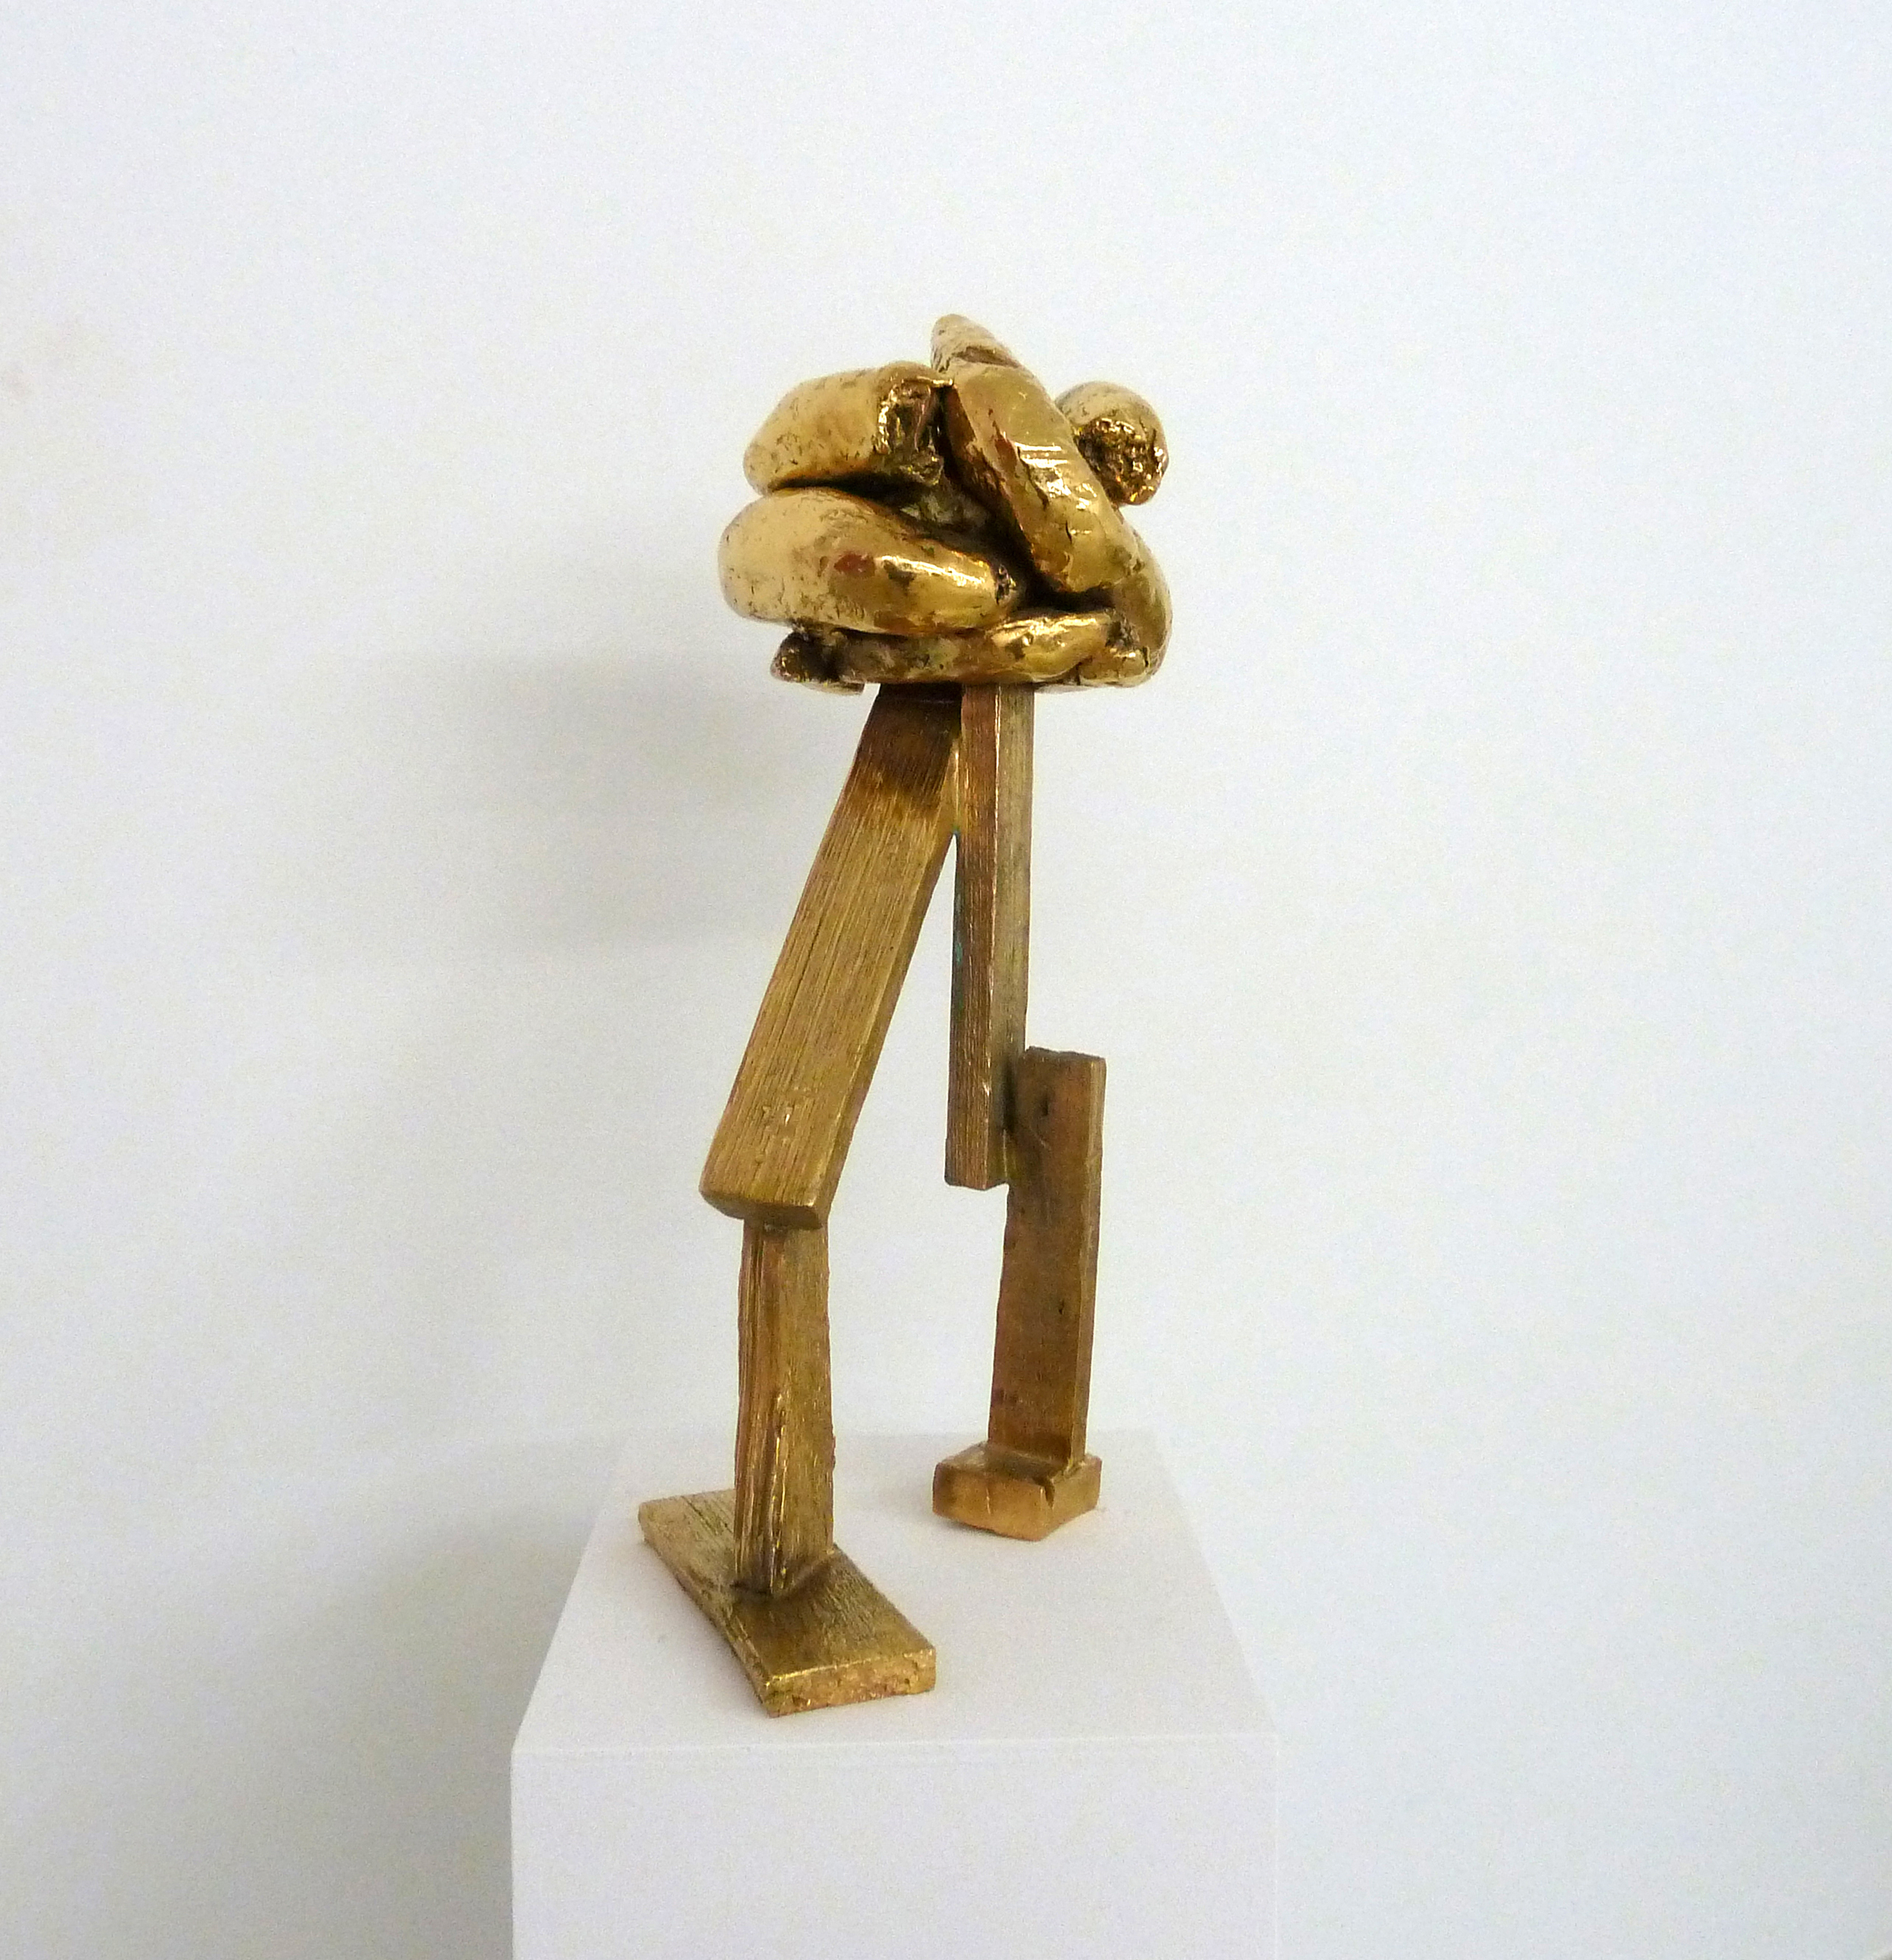 Crap Head, 2010 Bronze, gold-plated 63 x 30 x 35 cm